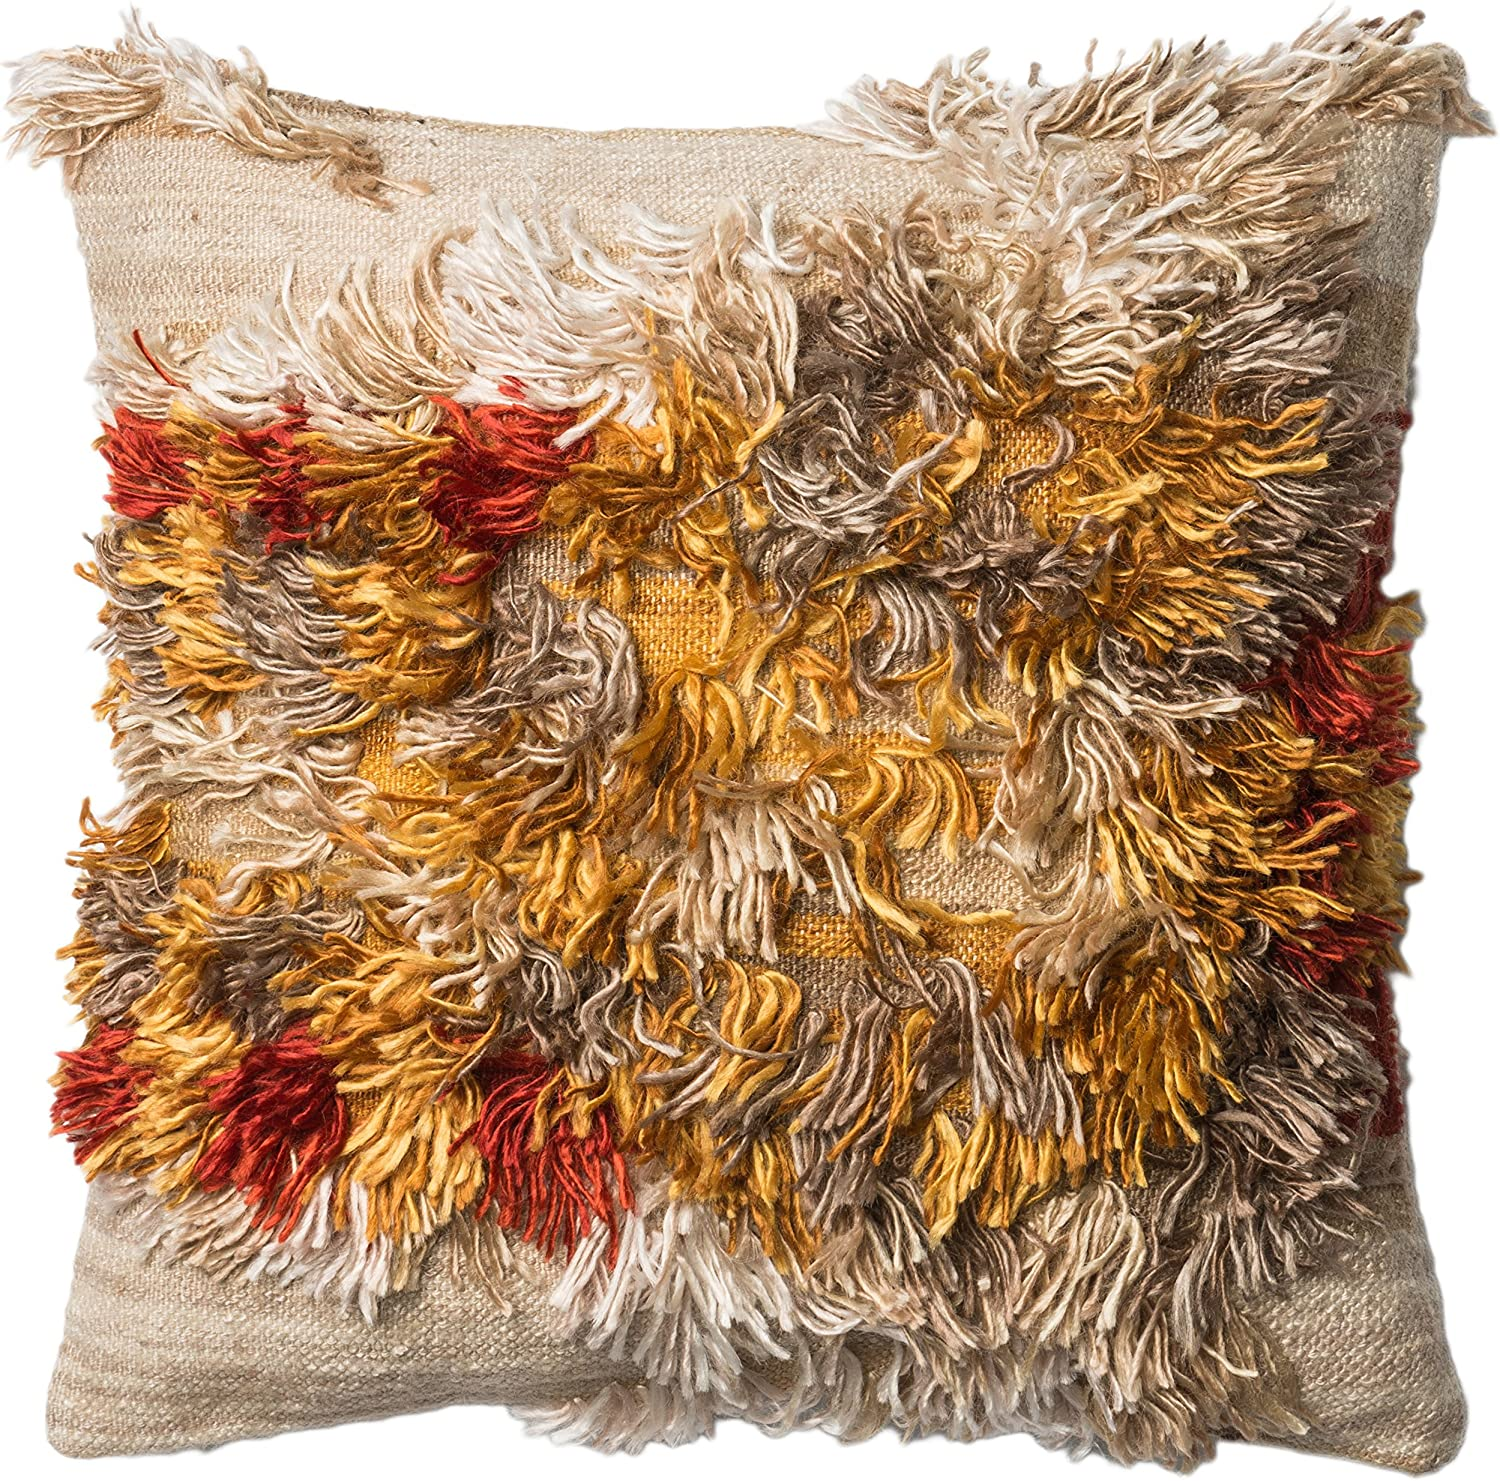 Loloi Loloi-DSETP0413CASSPIL3-Camel Decorative Accent Pillow 22  x 22  Mostly Wool Cover with Down Fill, 22  x 22 , Camel Sunset